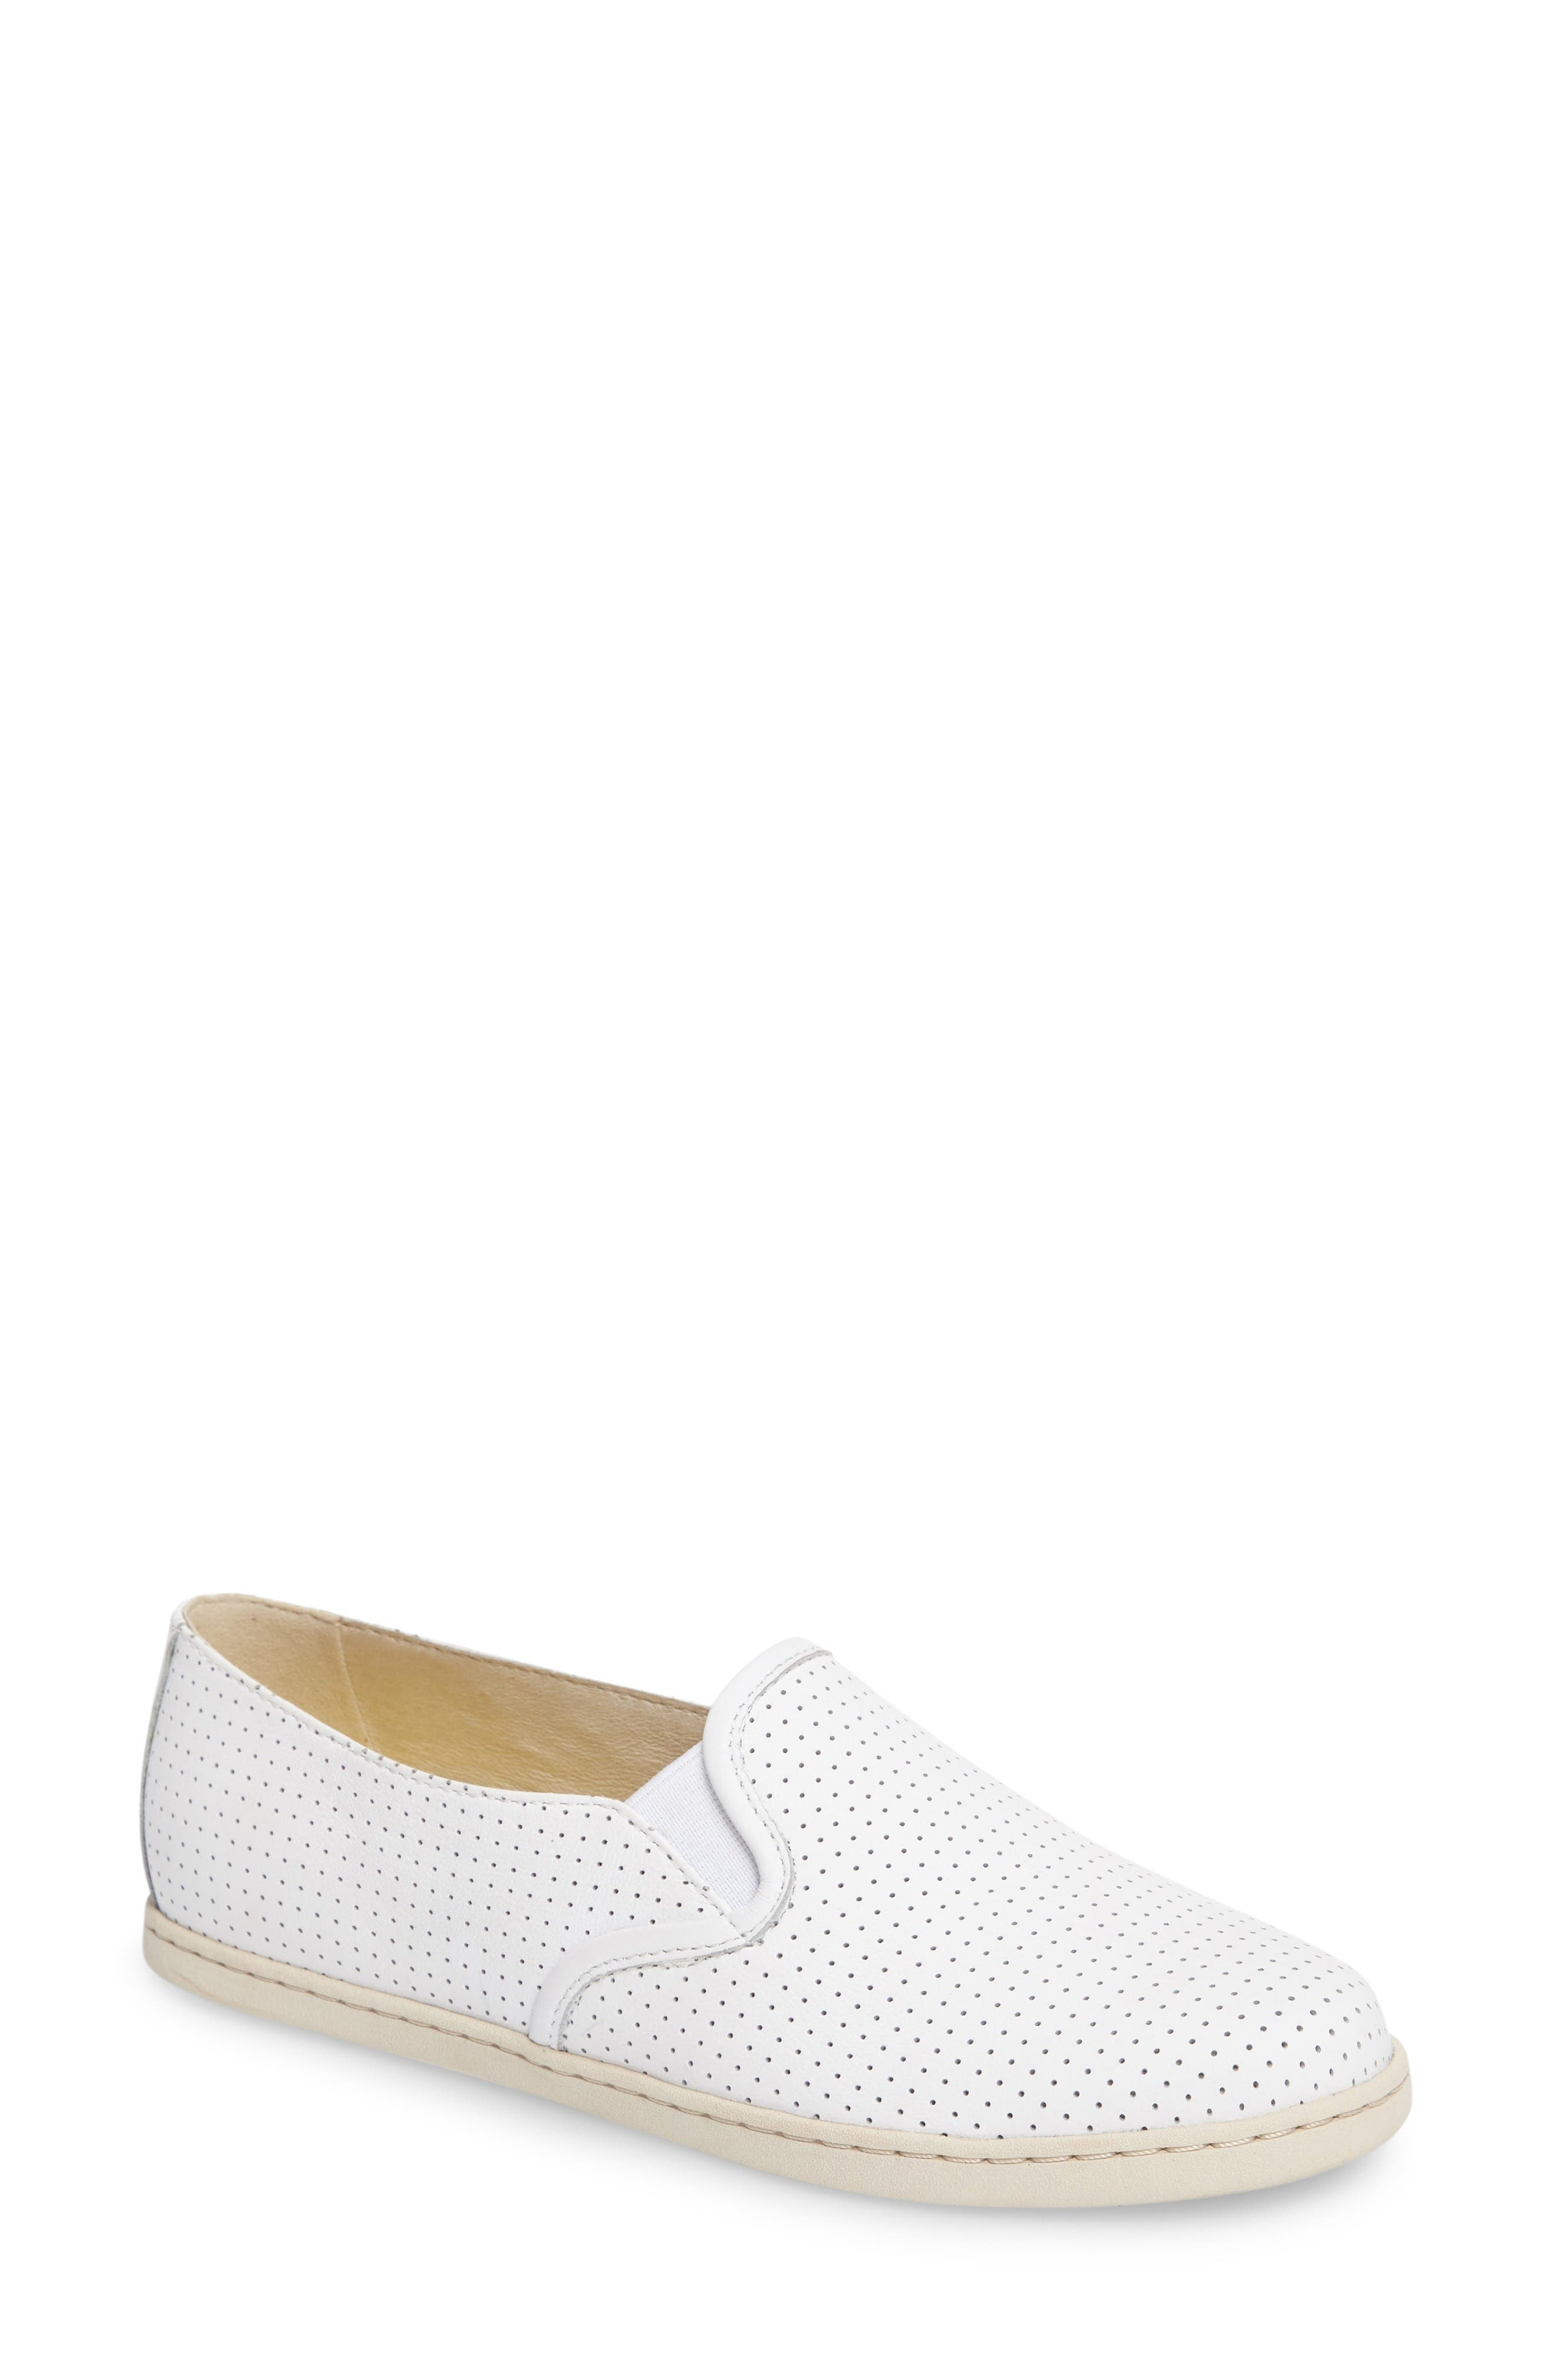 Main Image - Camper Uno Perforated Slip-On Sneaker (Women)